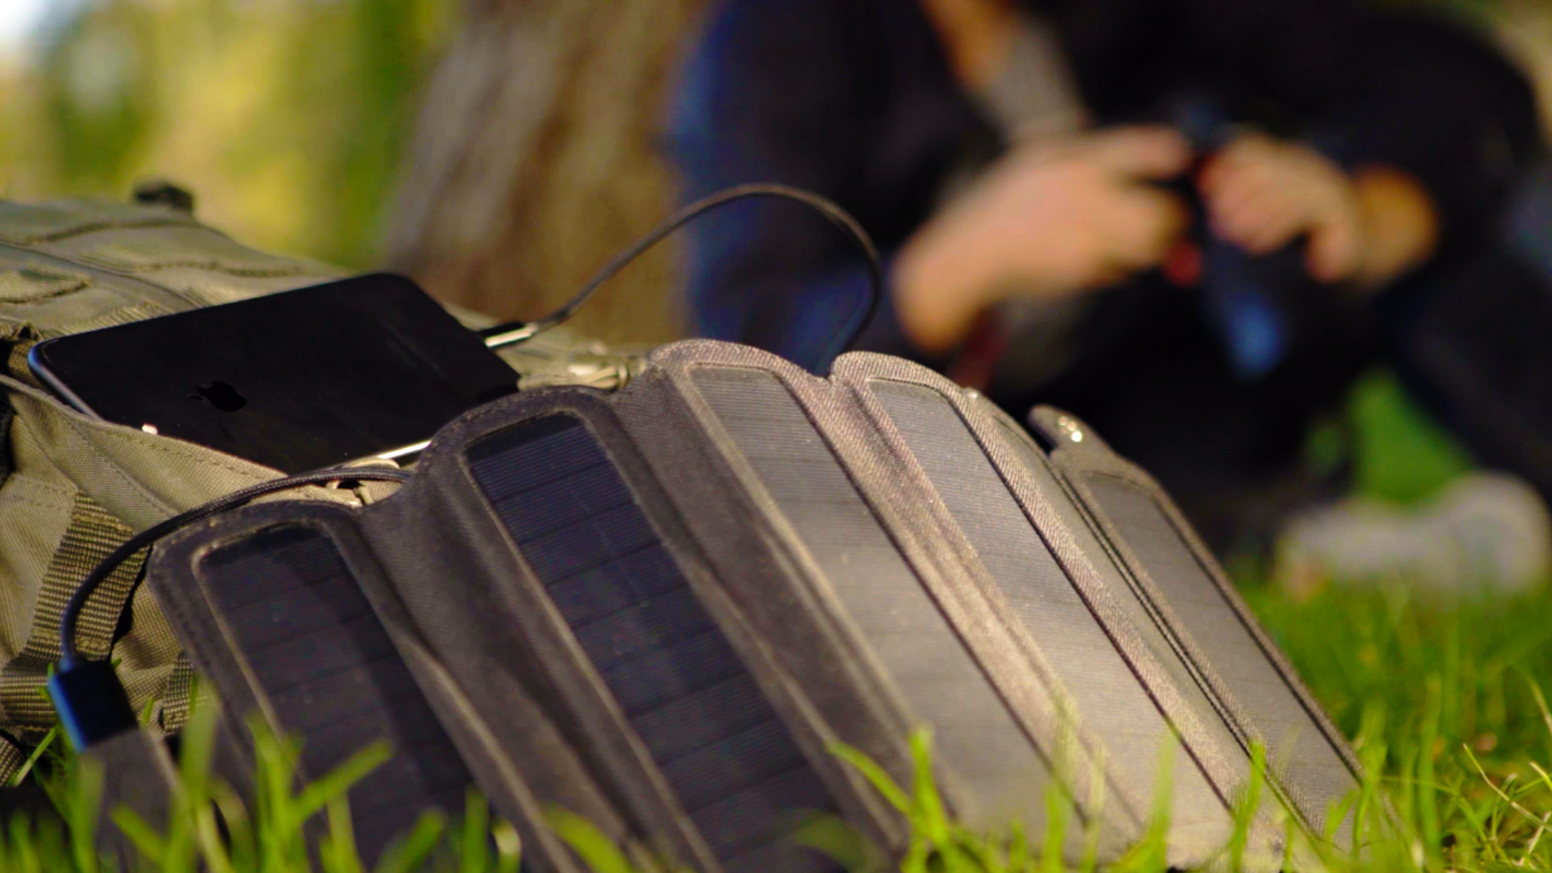 Charge your devices using solar power, with an integrated battery. -Ultra Portable -Magnetic Foldable -Charge more in parallel